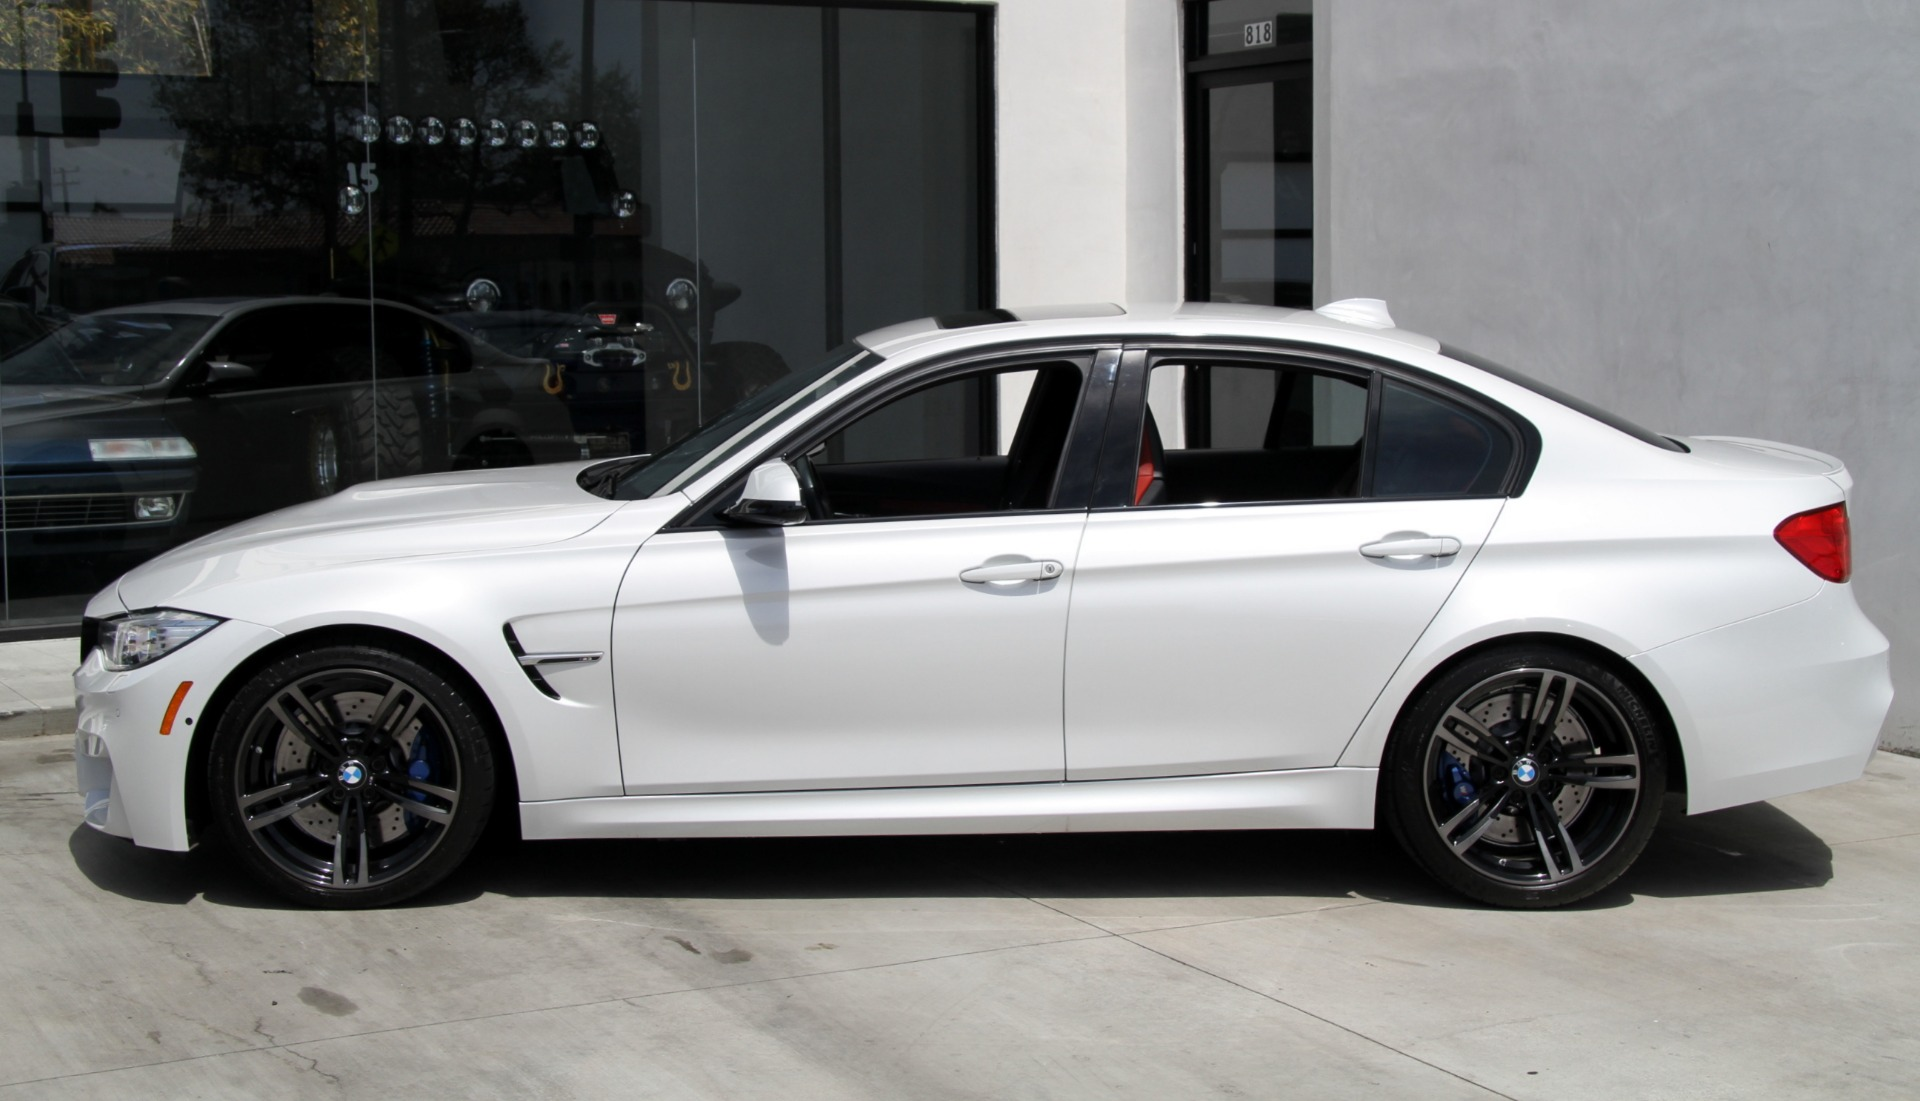 2015 Bmw M3 Executive Package Stock 6166 For Sale